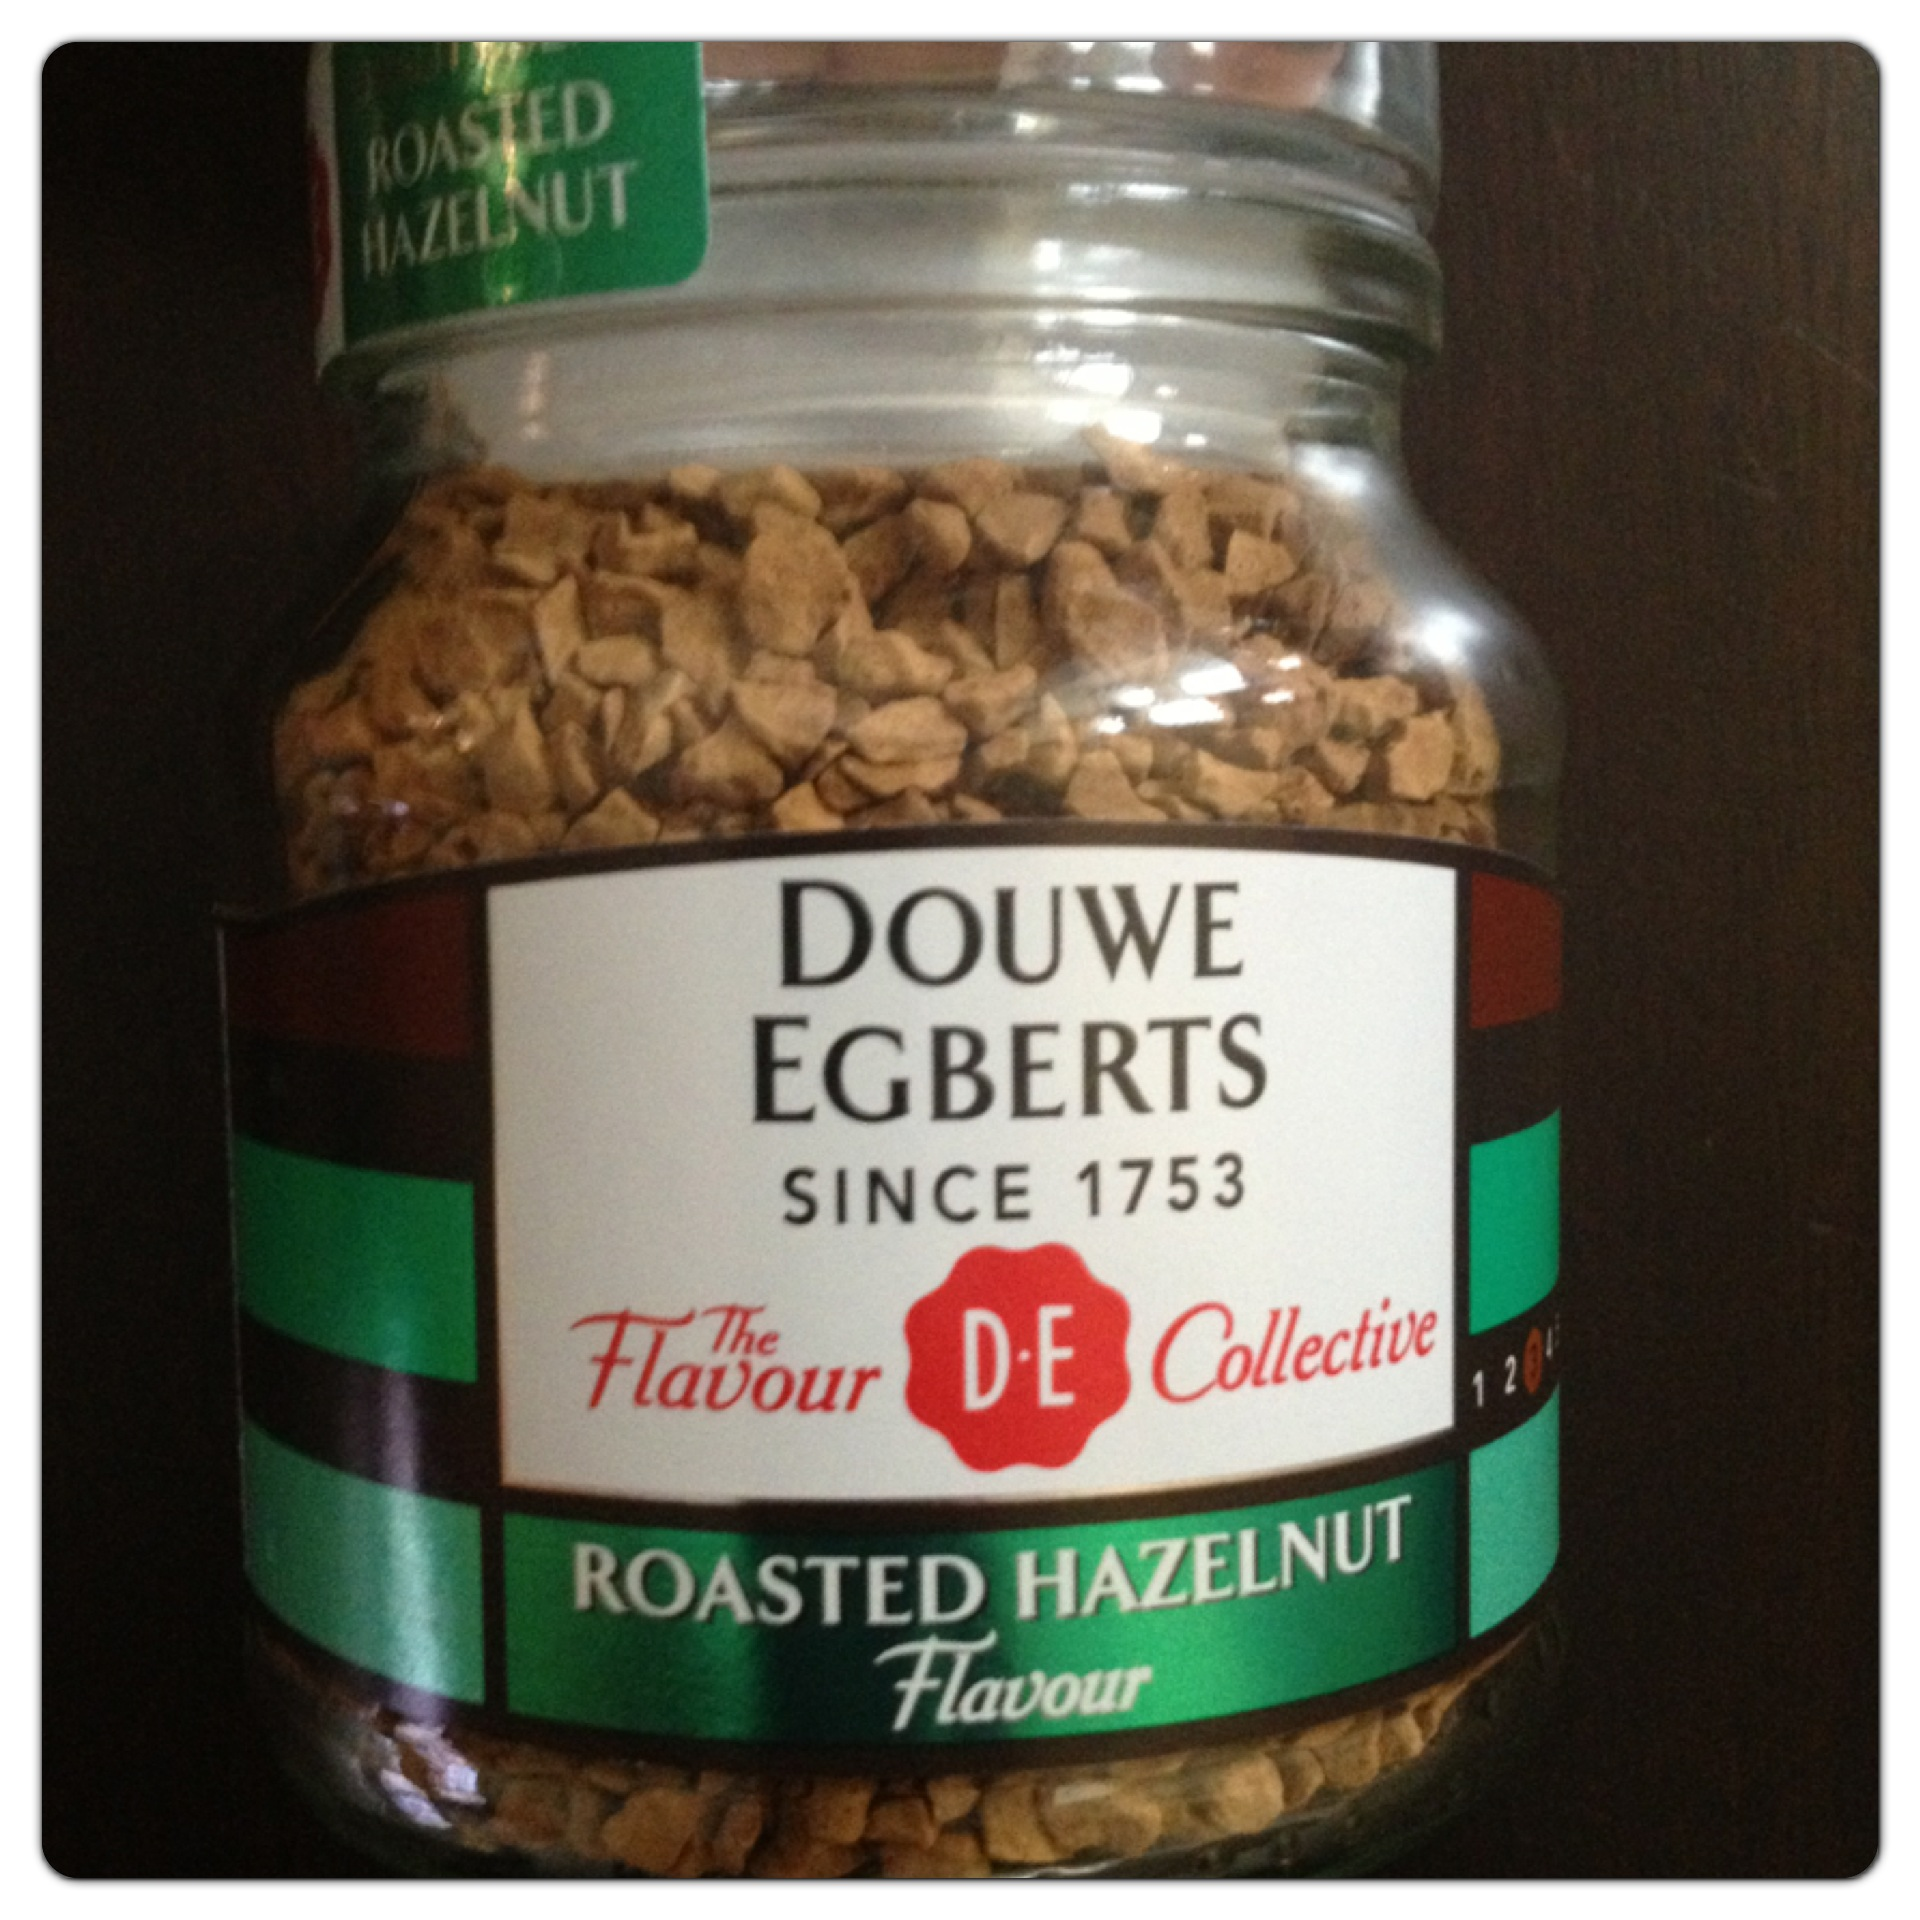 Douwe Egberts Add Enticing Chocolate To The Flavour